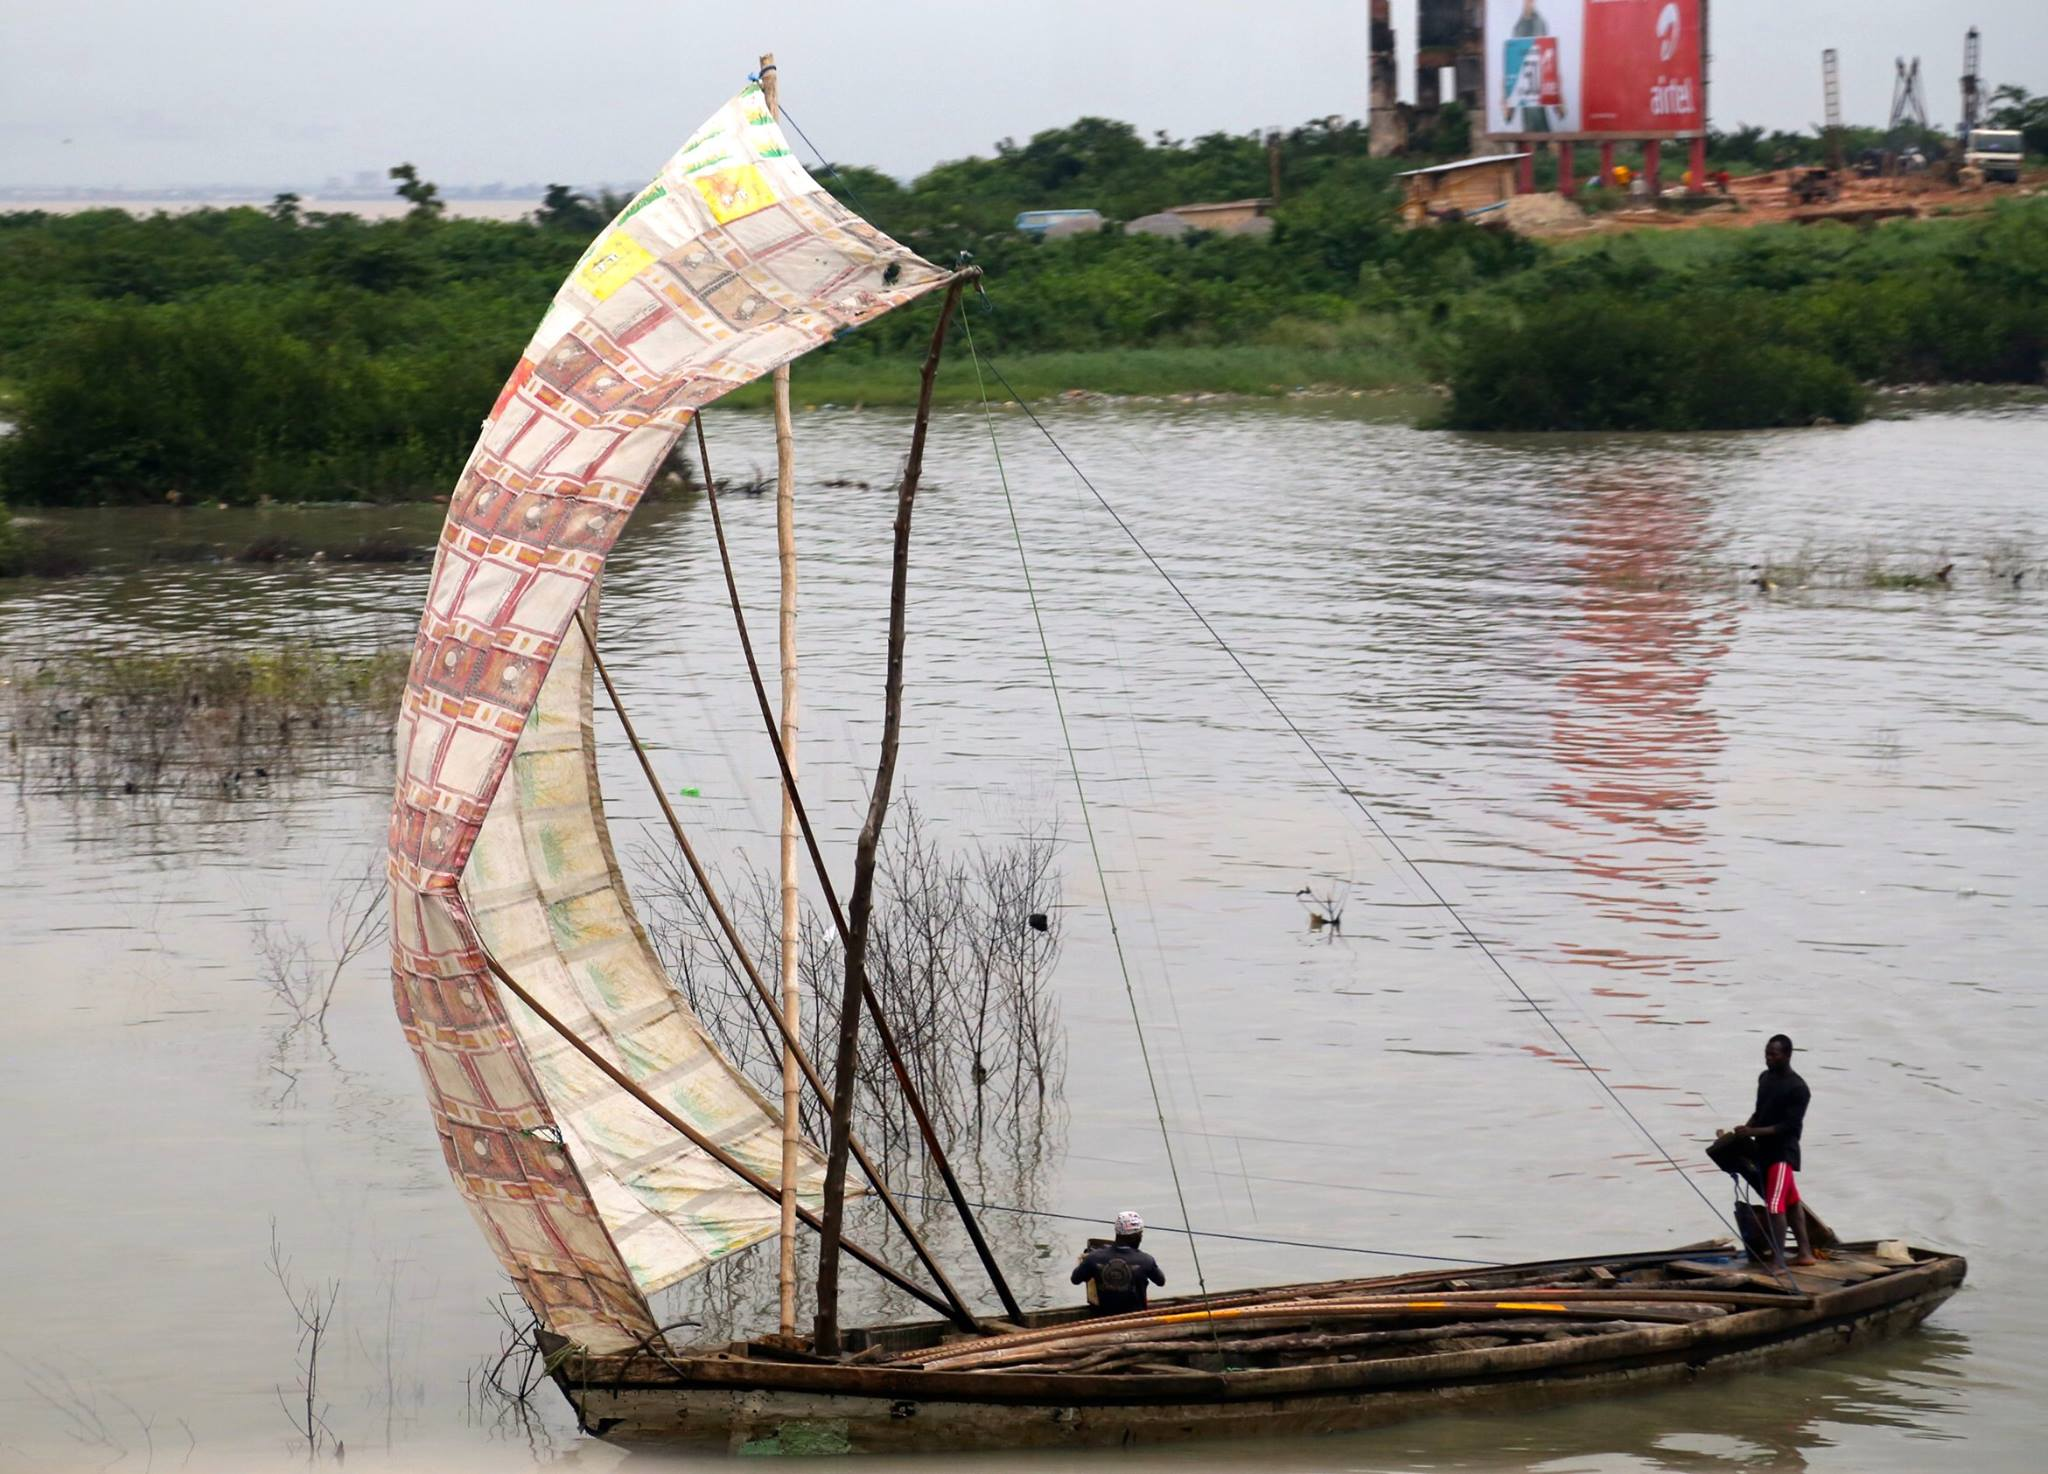 Suicide mission: Woman throws child into lagoon, jumps in ...